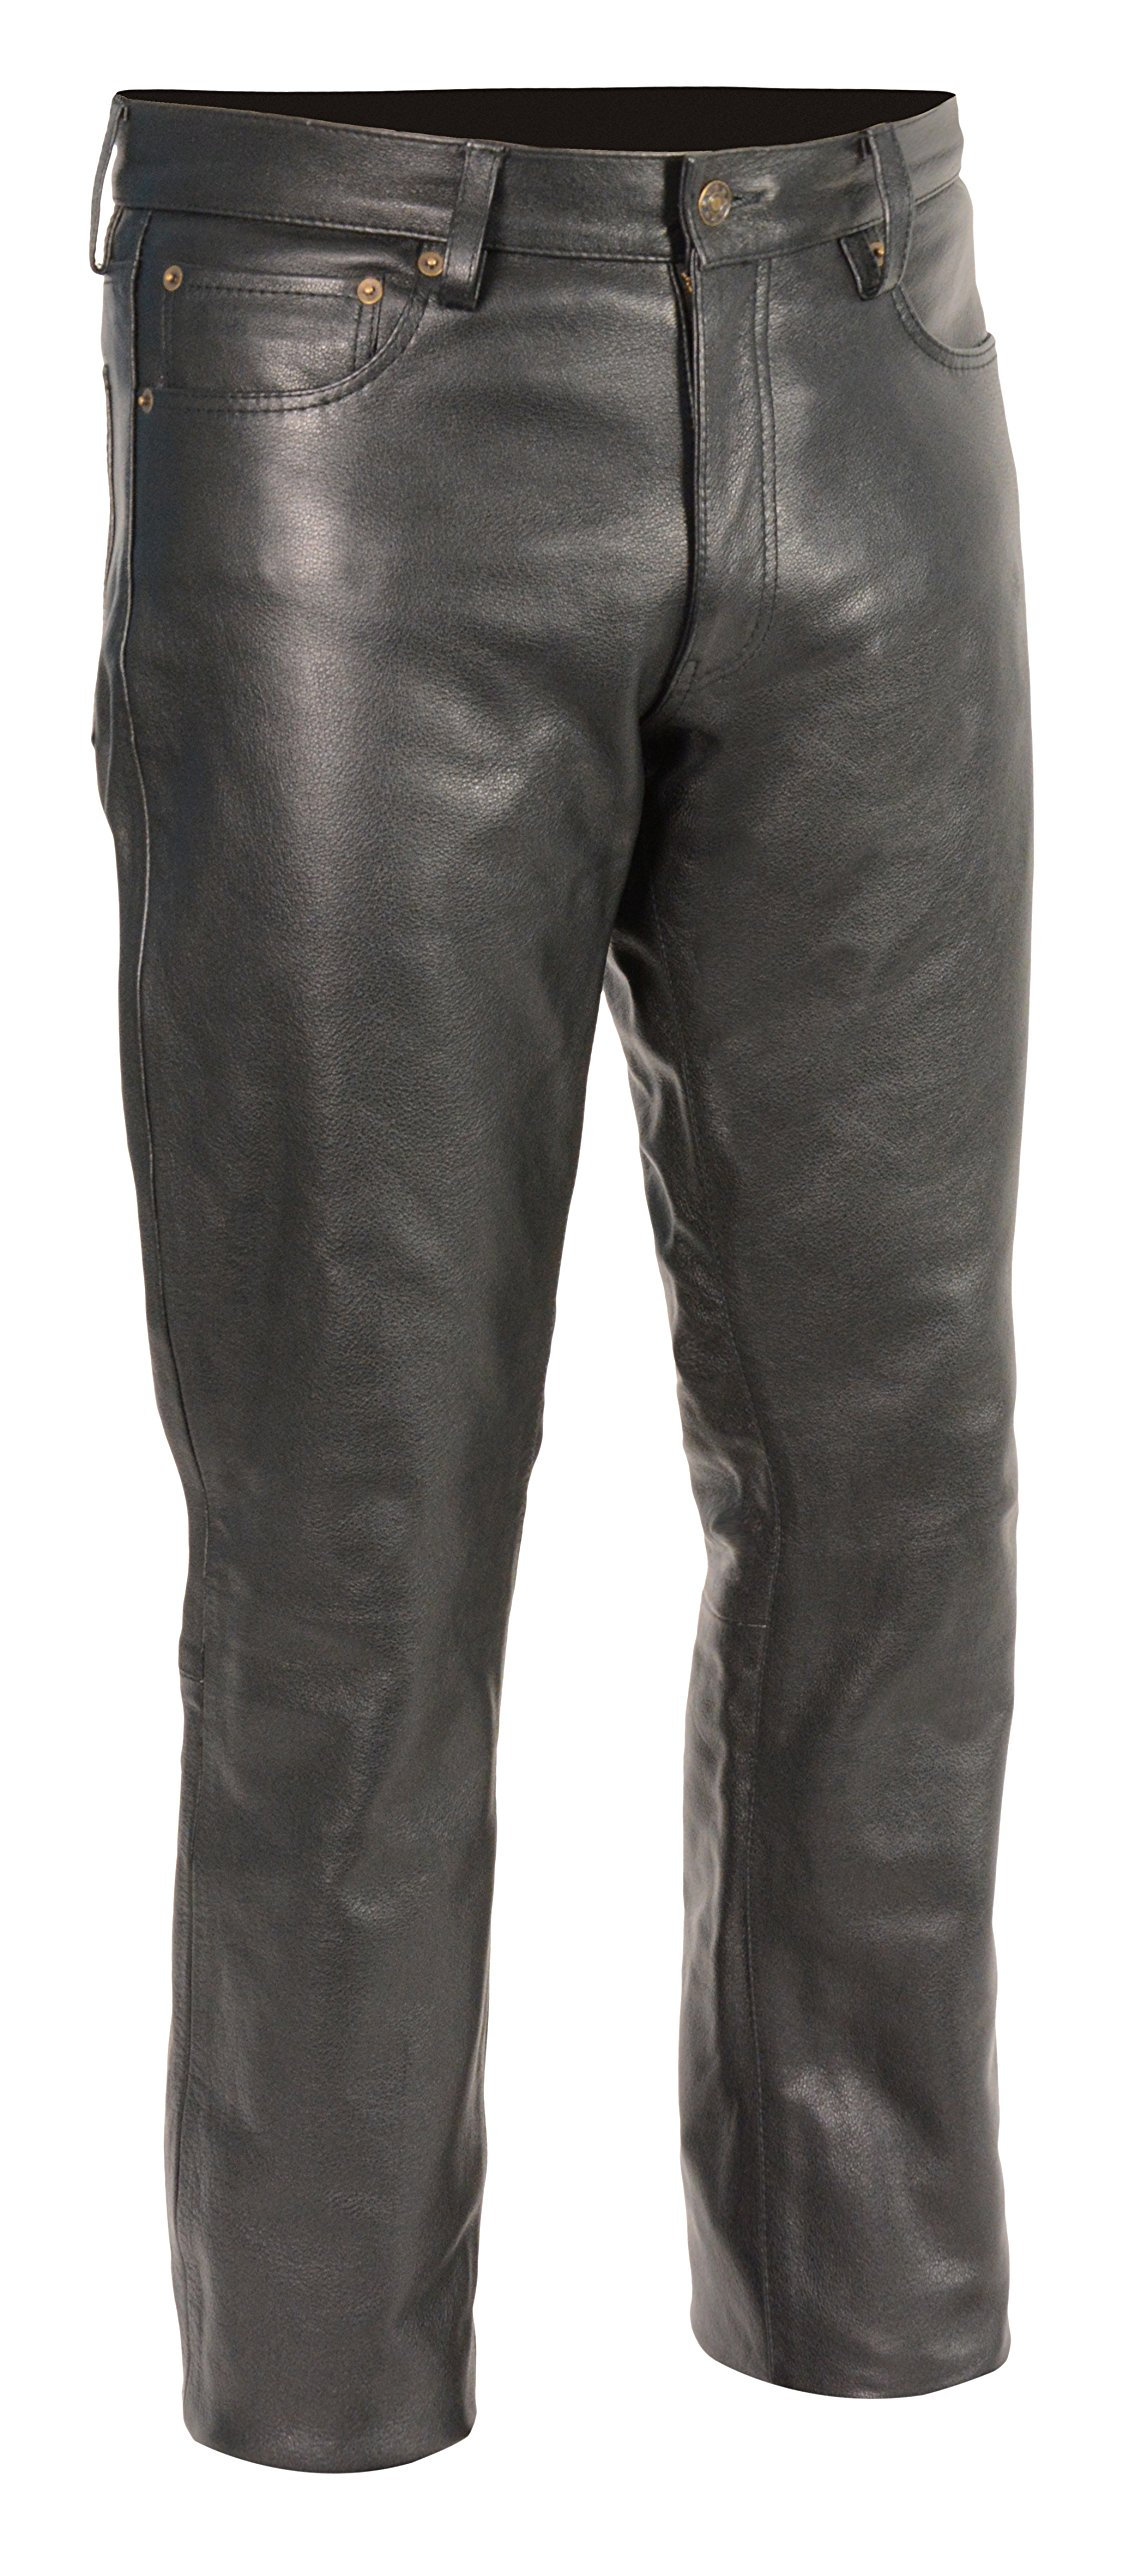 Milwaukee Leather Men's Premium Leather Pants (Black, Size 34) (S) by Milwaukee Leather